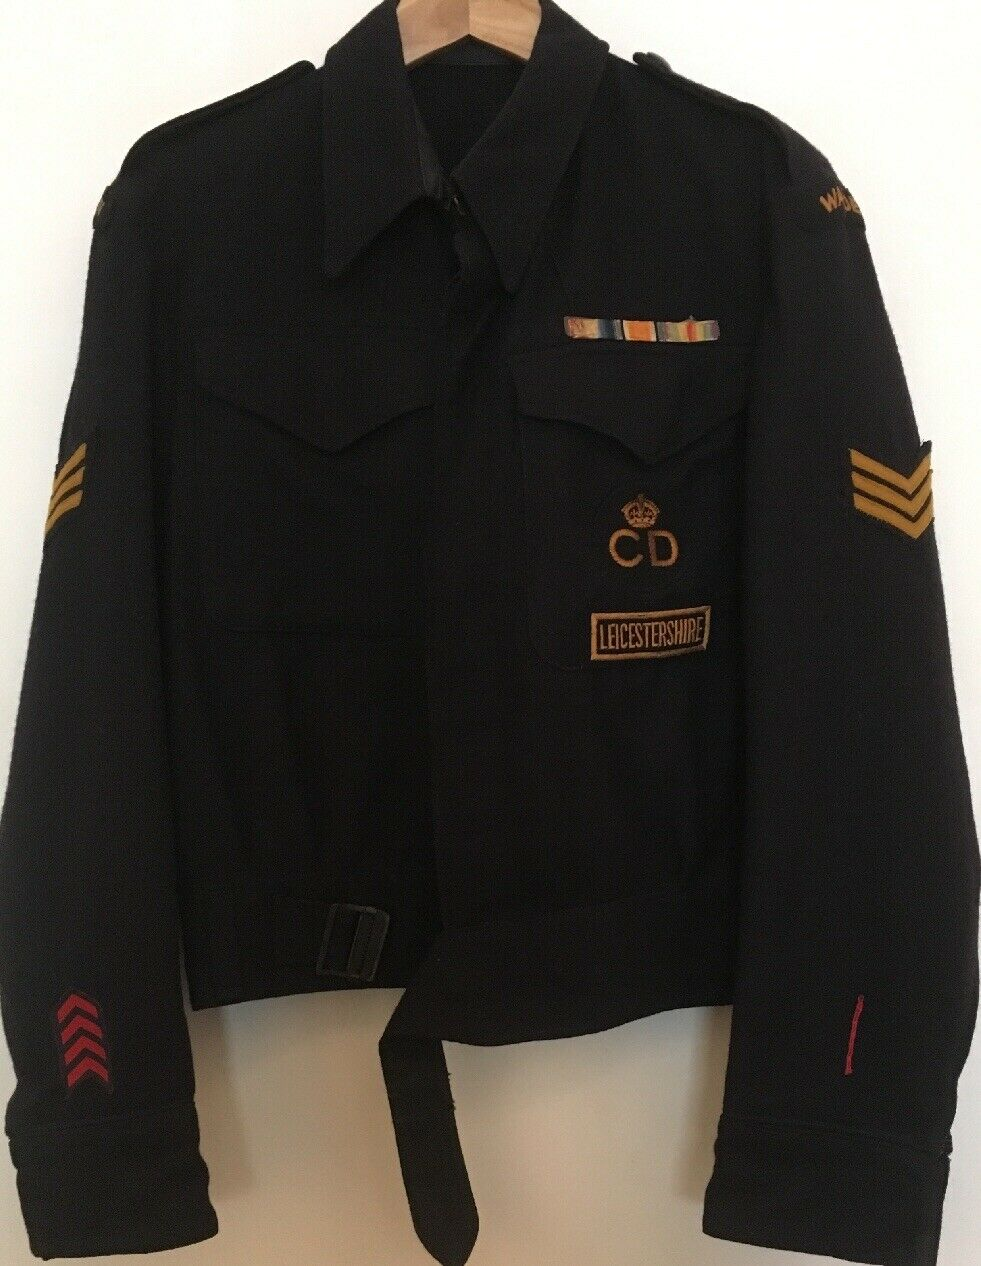 1942 Battledress Blouse With Insignia And Rare Wound Stripe